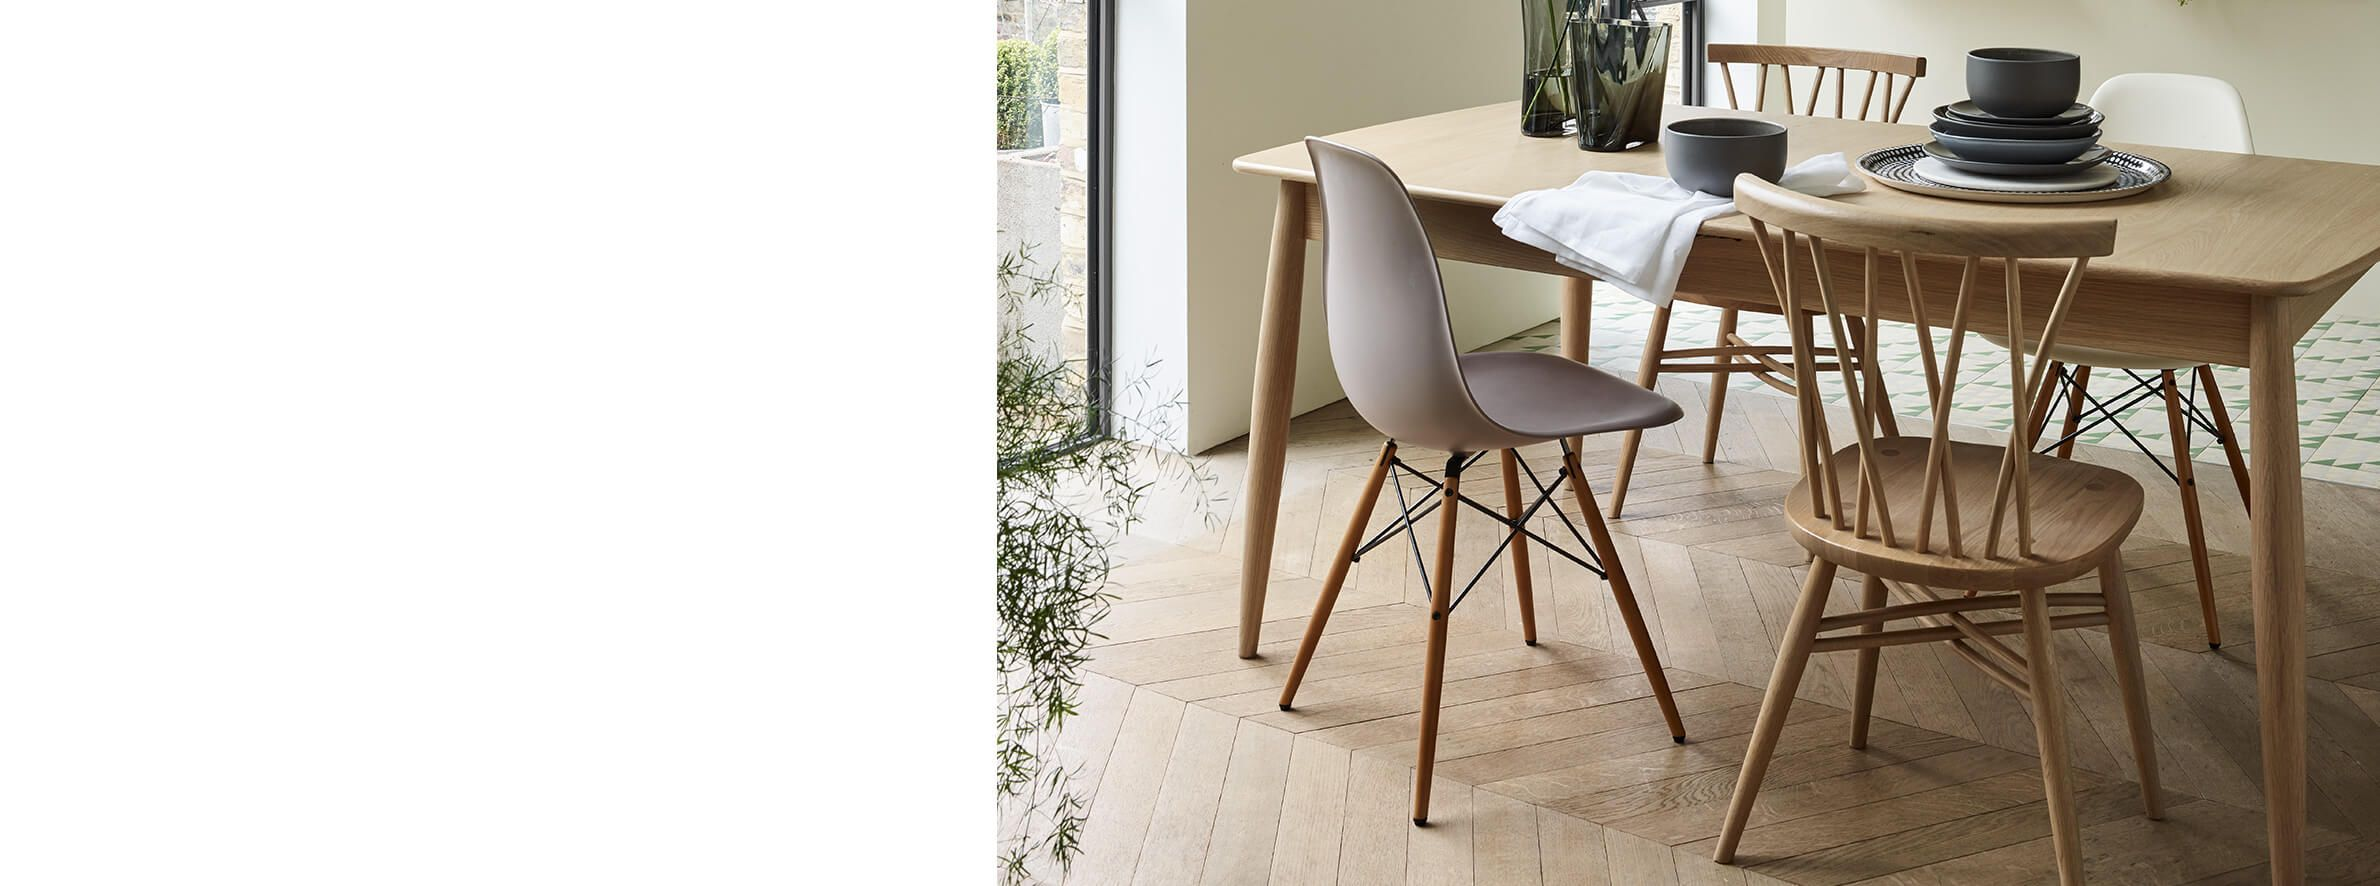 Dining Tables | Round & Square Dining Room Tables at John Lewis